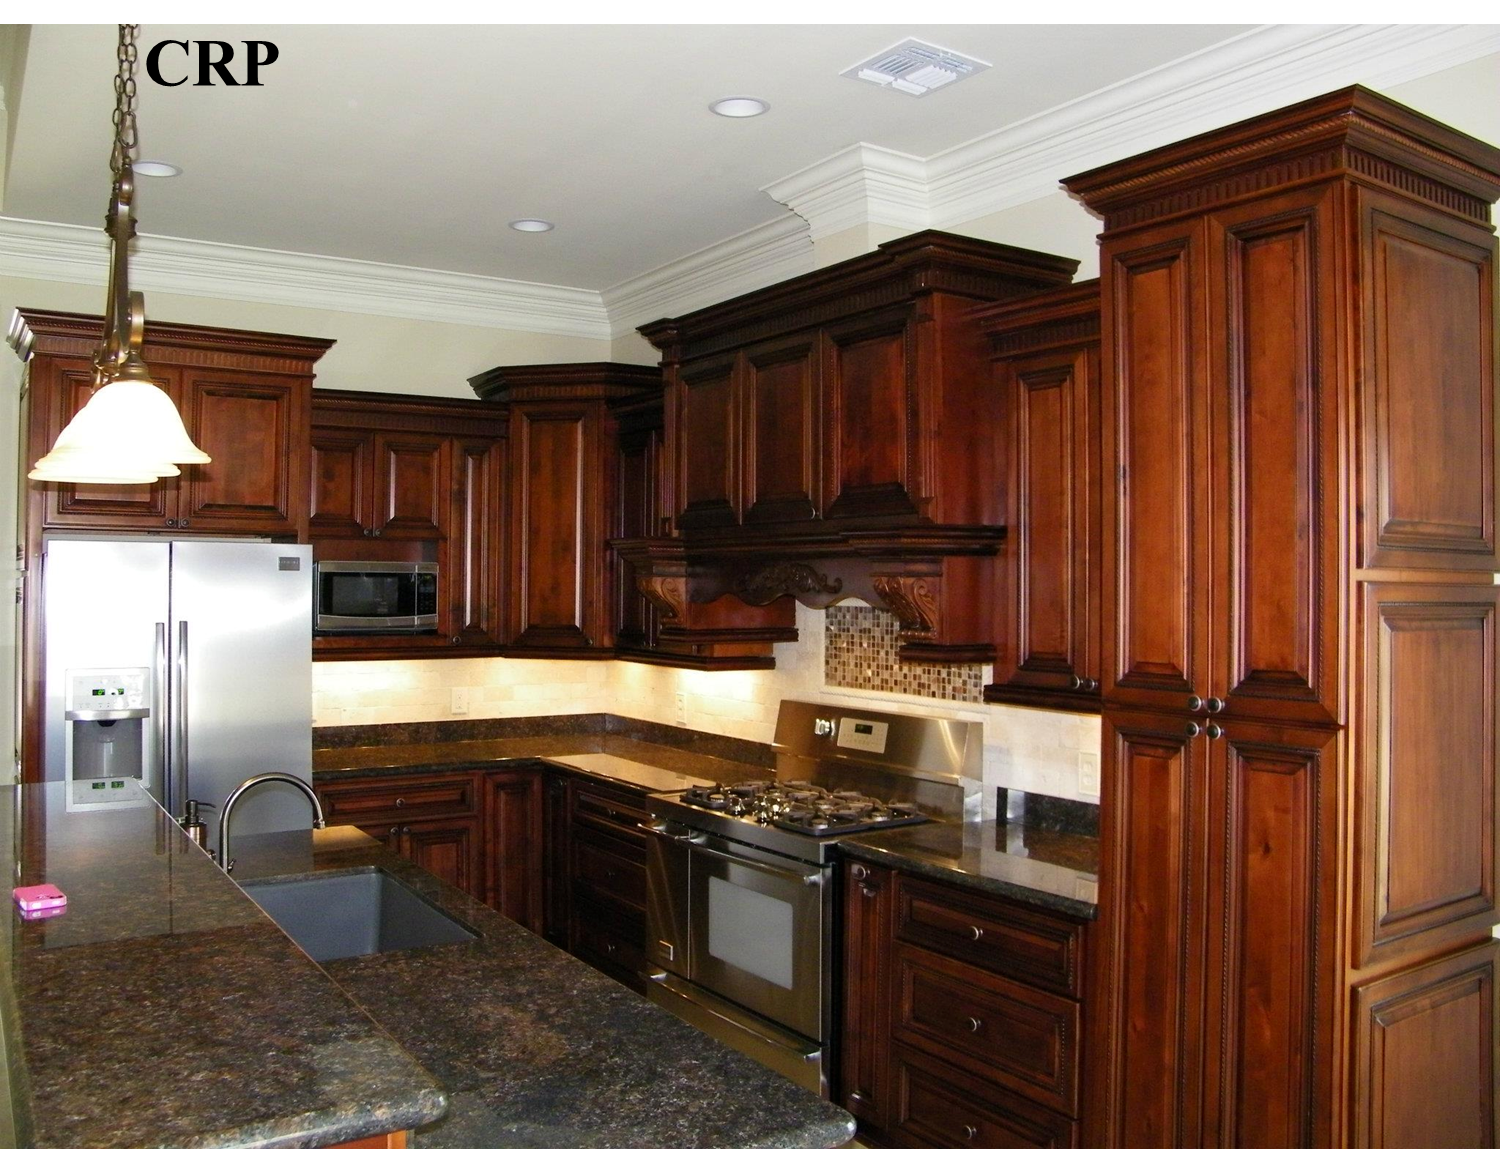 Kitchen cabinets rta crp gallery rta cabinet warehouse for Kitchen cabinets rta